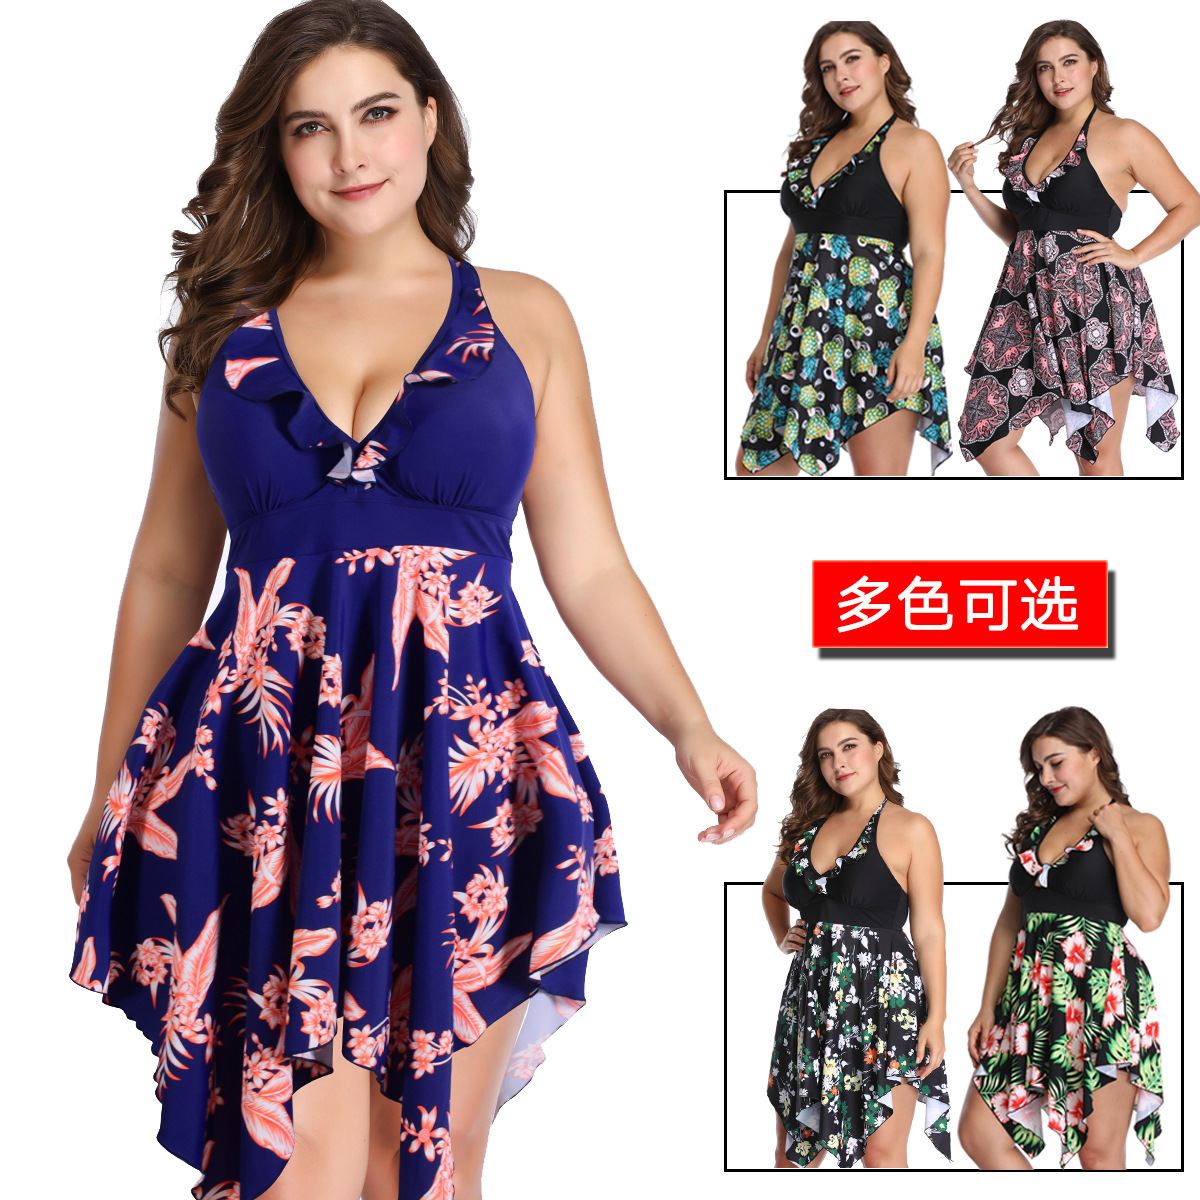 2019 Large Size Swimming Suit Two-piece Suit Monokini Full Skirt Printing Increase Fertilizer Swimwear Large Bust  Fat